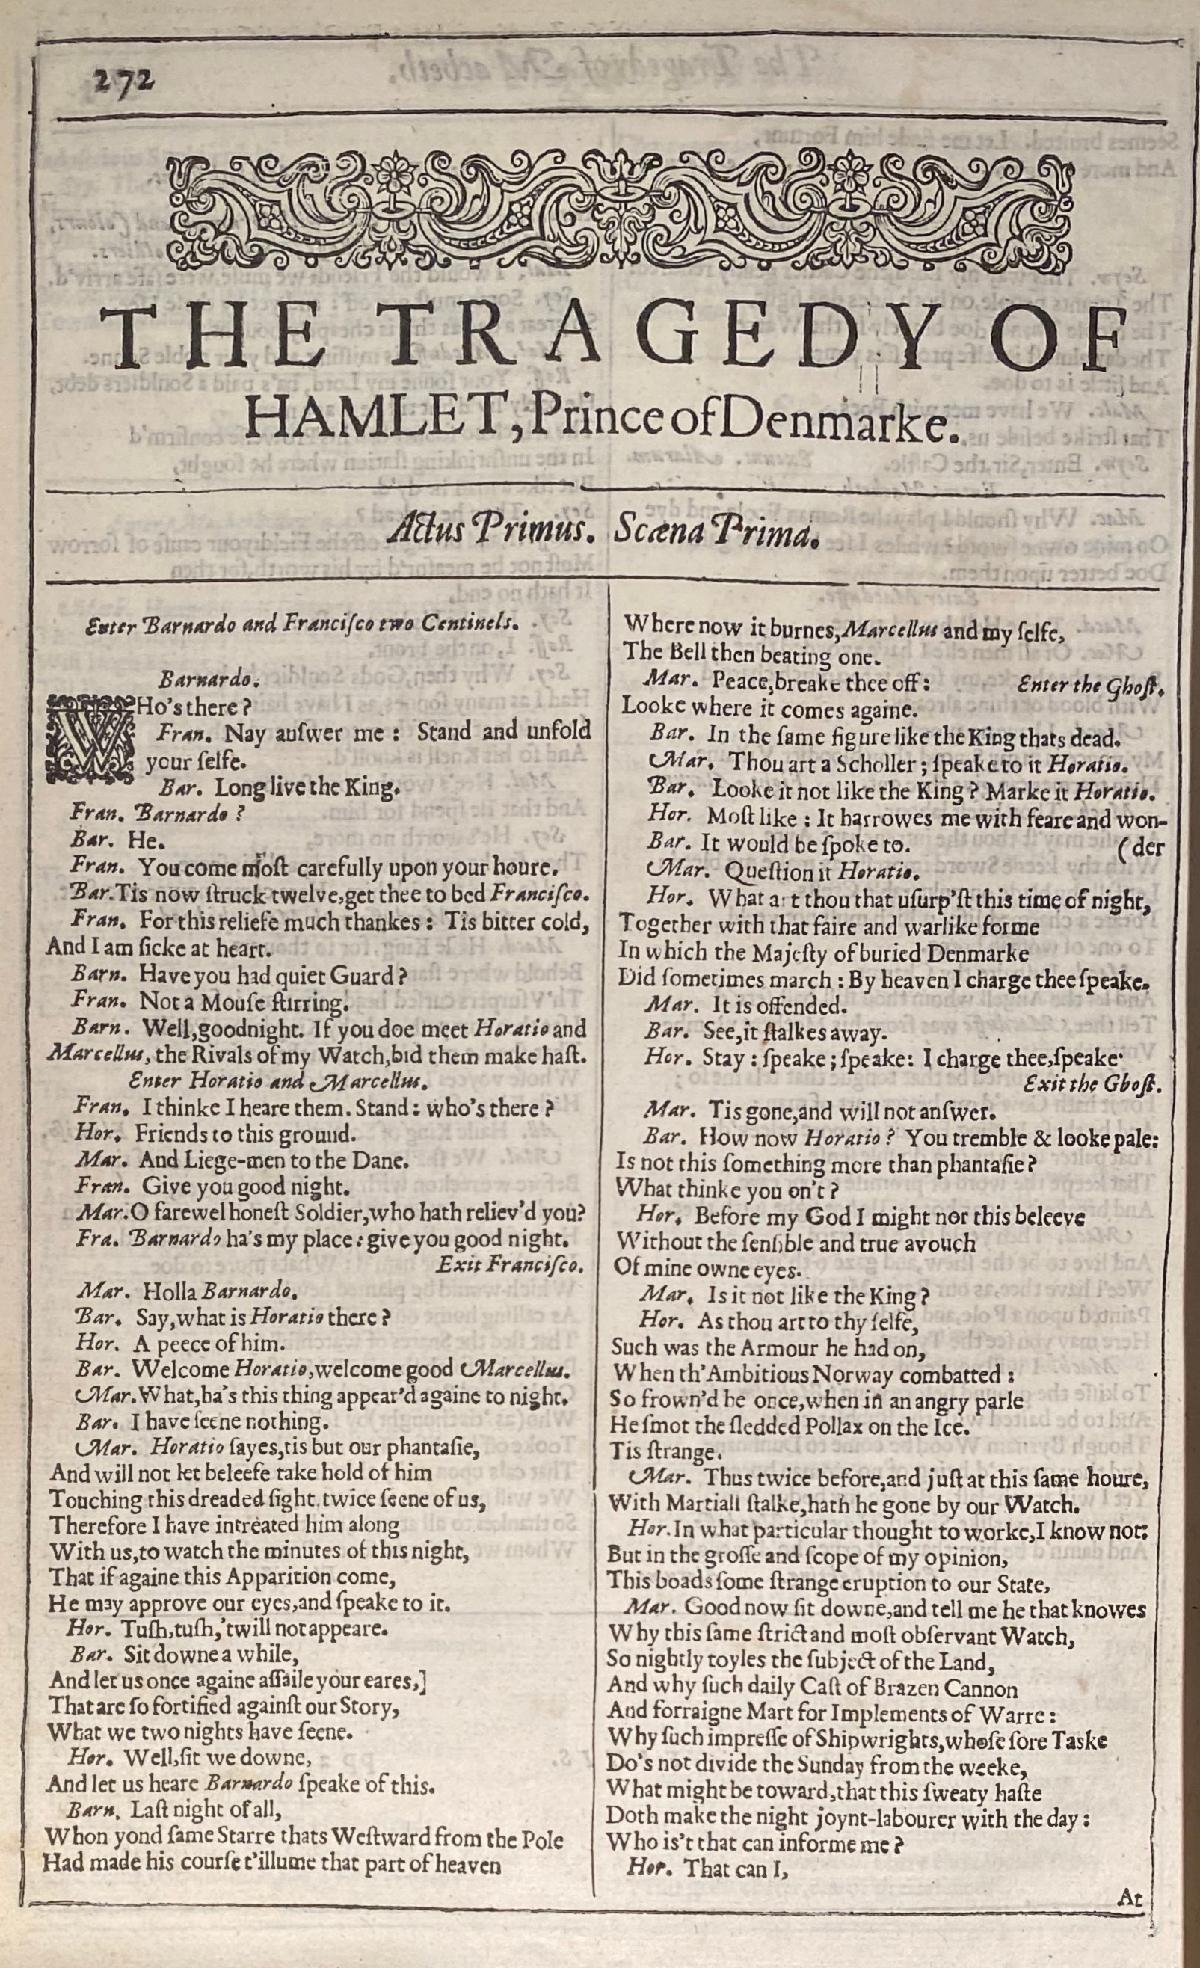 Mr. William Shakespeare's comedies, histories, and tragedie